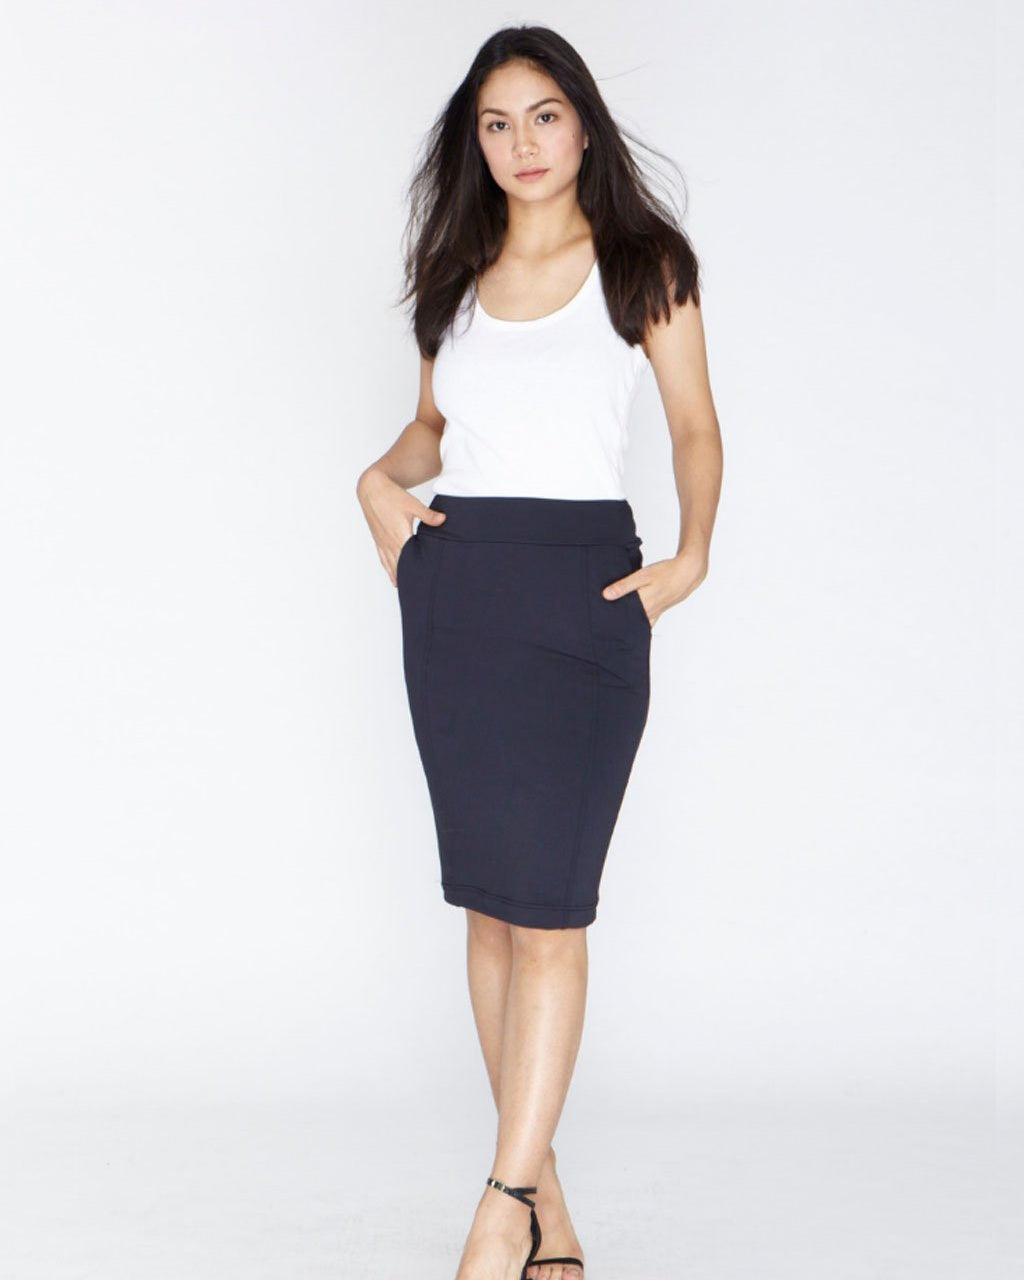 The Everyday Skirt - Onyx Black